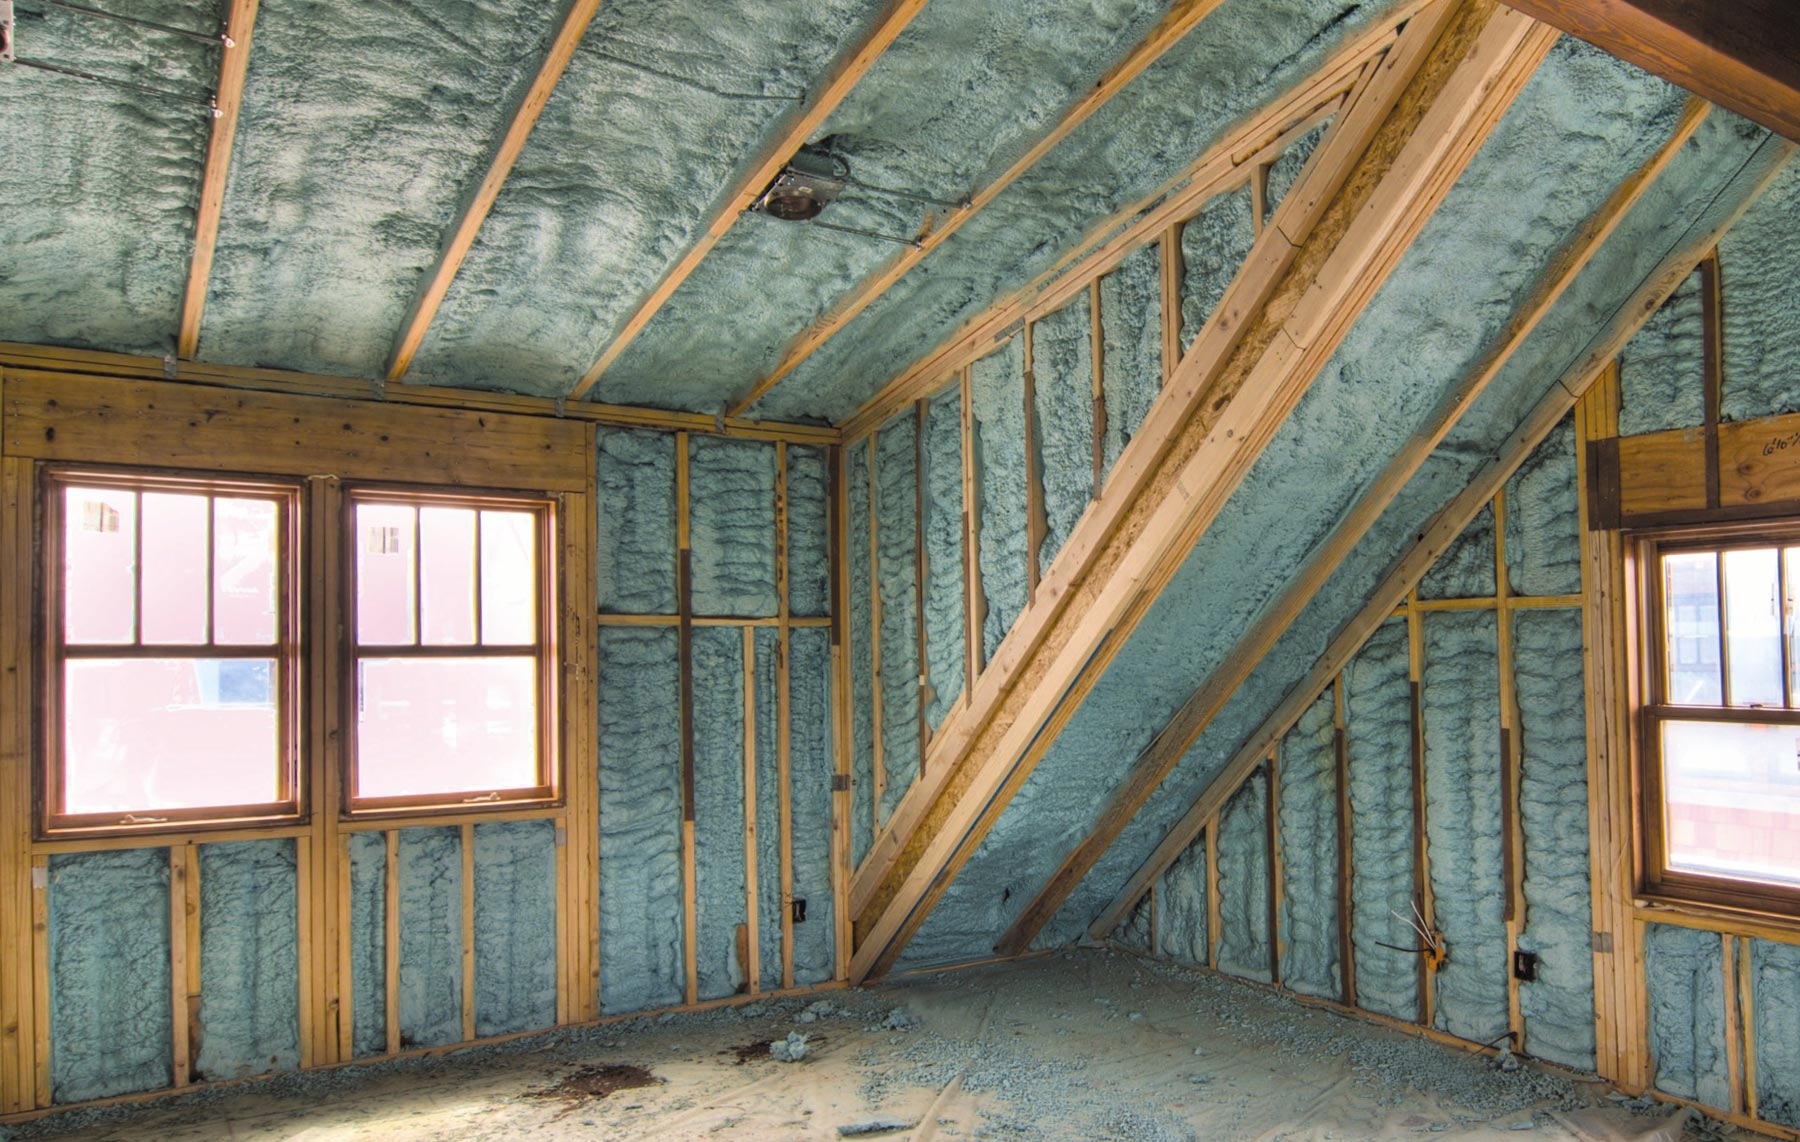 State-of-the-art spray foam insulation creates a more comfortable living space and reduces utility bills.